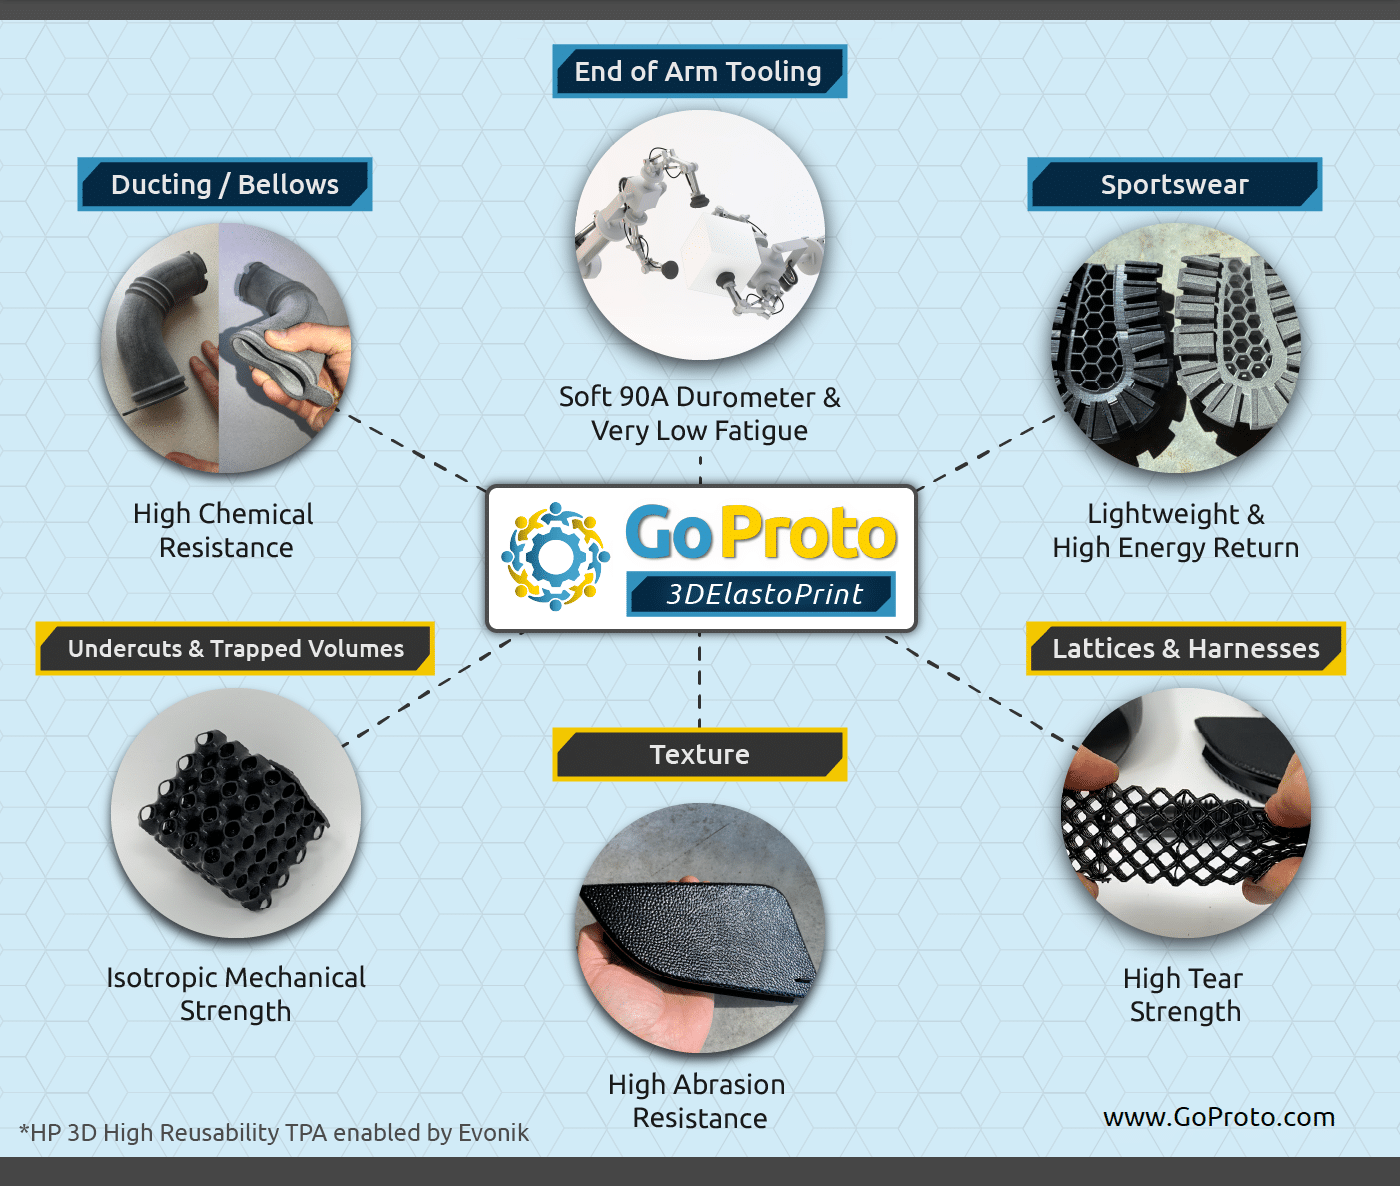 3DElastoPrint by GoProto, a 3D printing parts service featuring a production grade elastomeric TPA on our HP Multi Jet Fusion machines, enabling the production of rubber-like parts unachievable by traditional manufacturing methods.